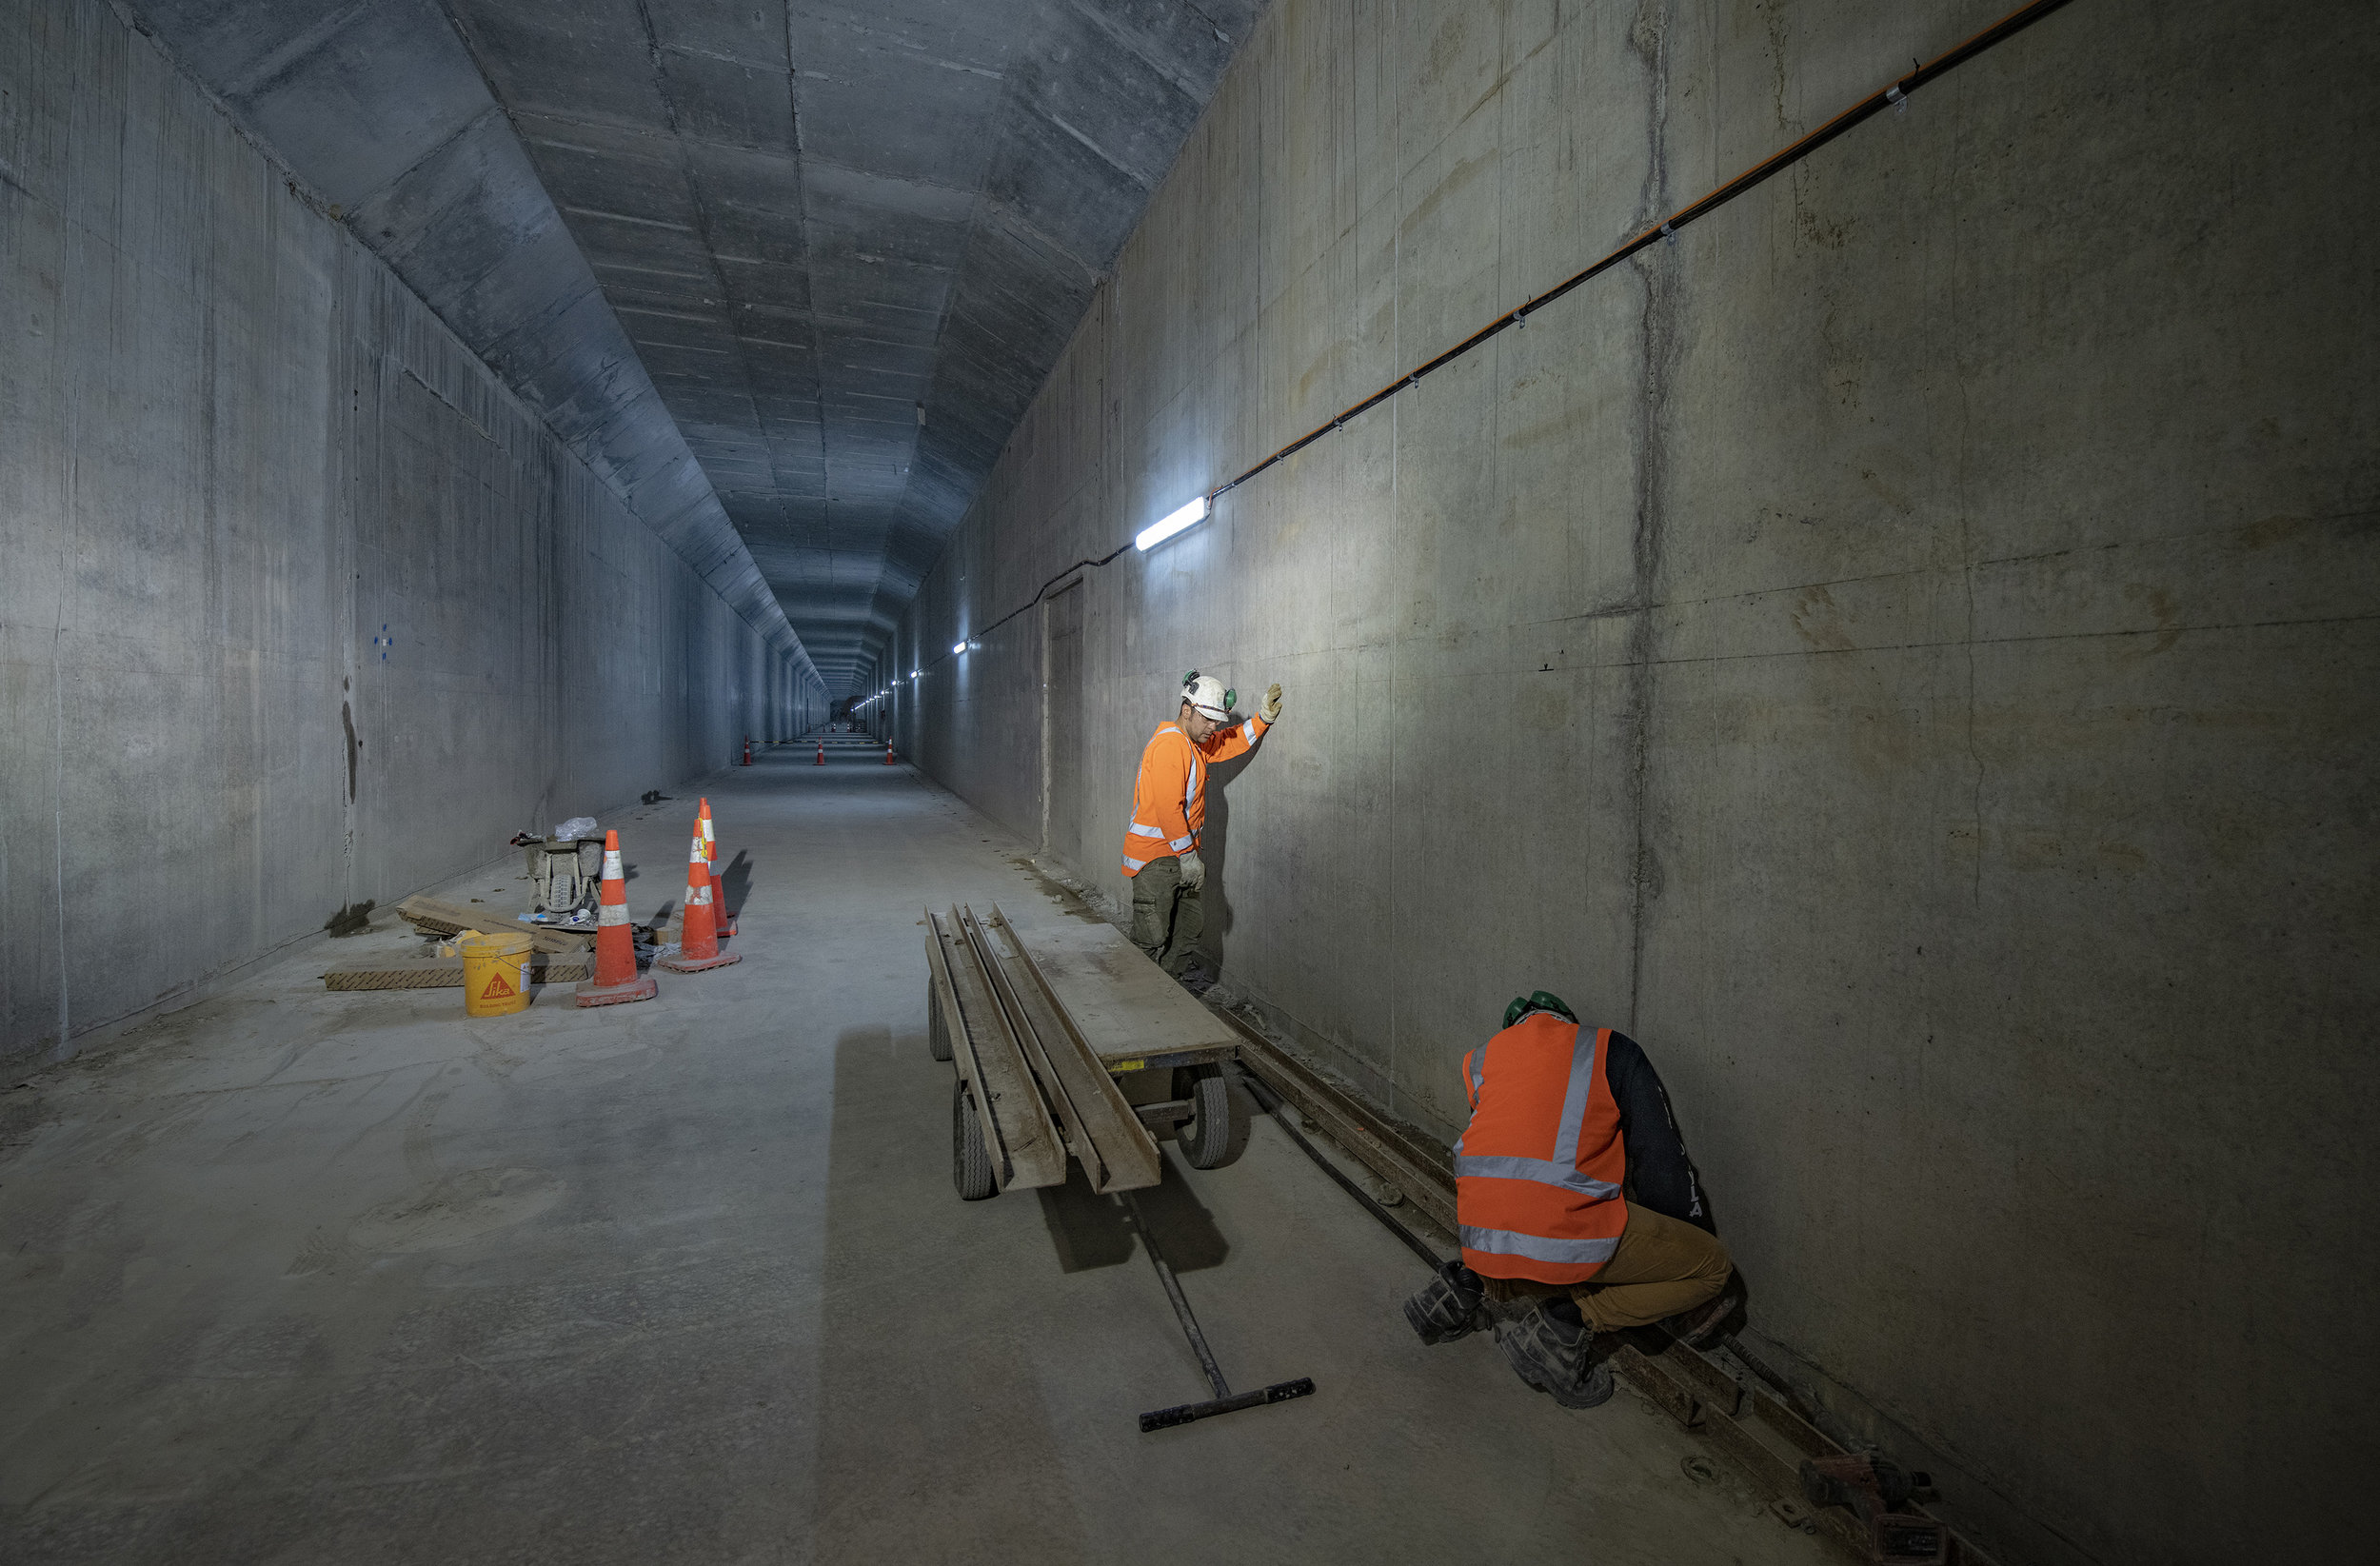 Tunnel construction 9 May 2019